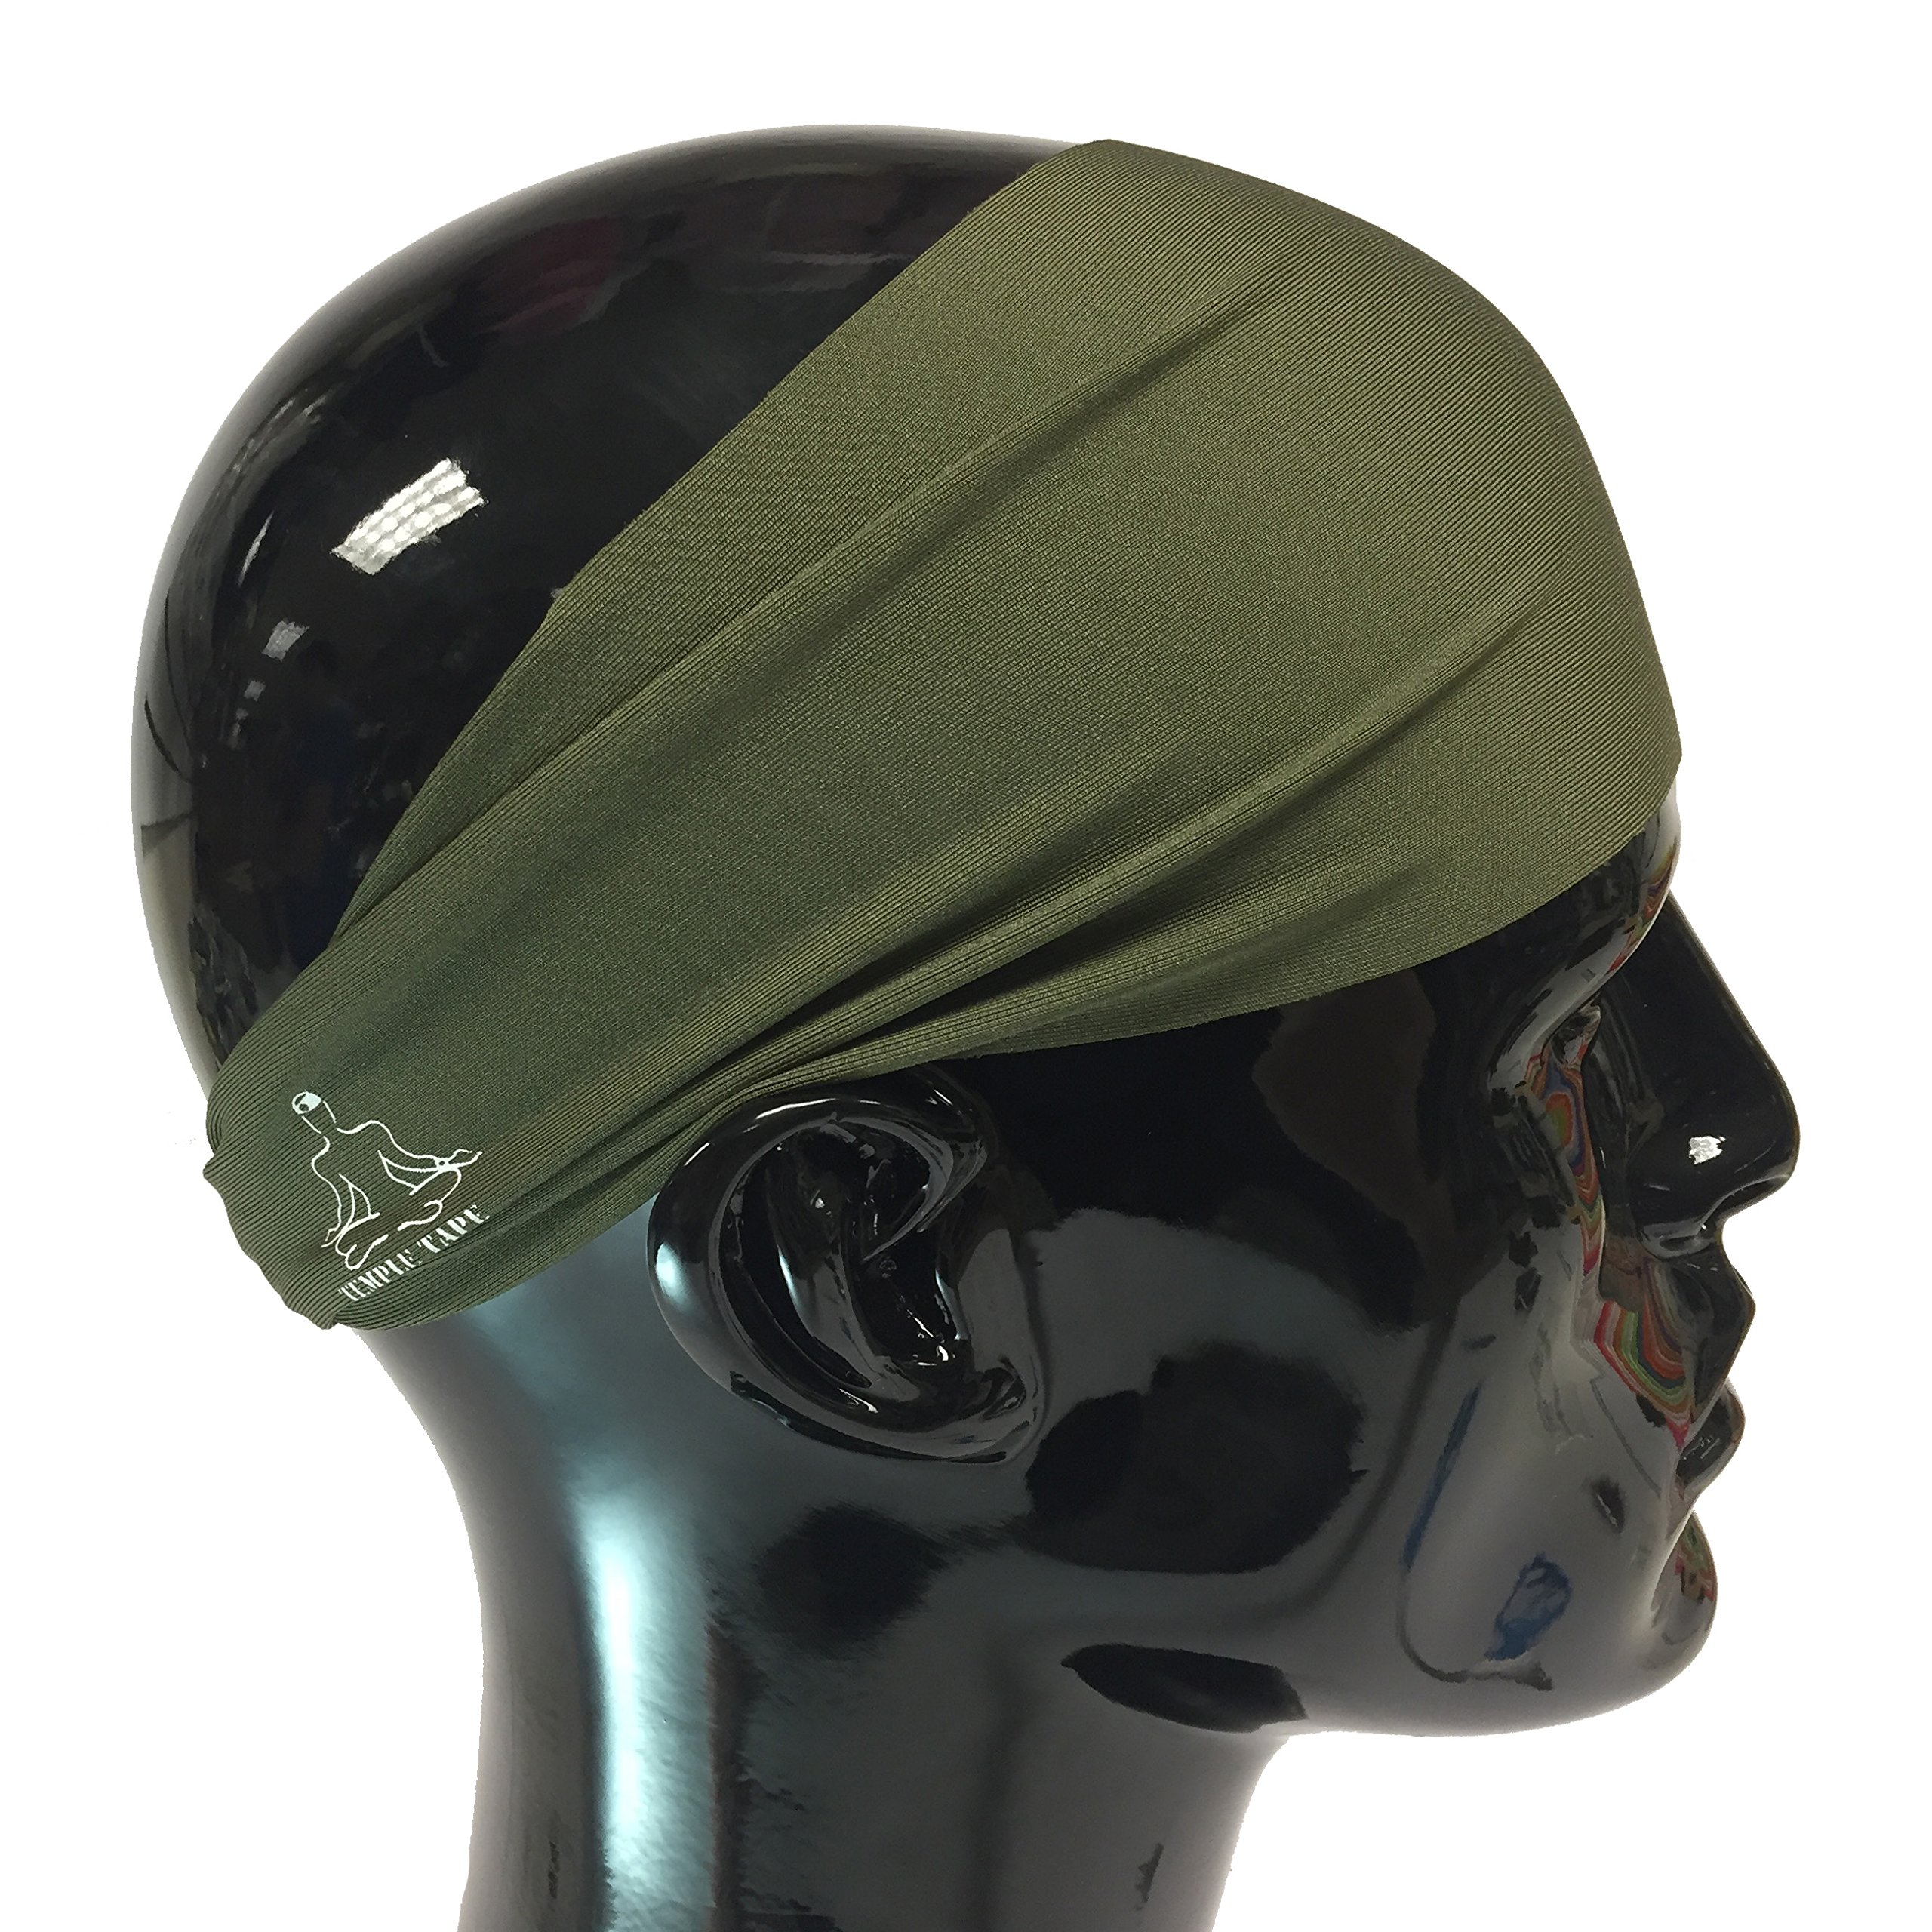 Temple Tape Headbands for Men and Women - Mens Sweatband & Sports Headband Moisture Wicking Workout Sweatbands for Running, Cross Training, Yoga and Bike Helmet Friendly - OD Green by Temple Tape